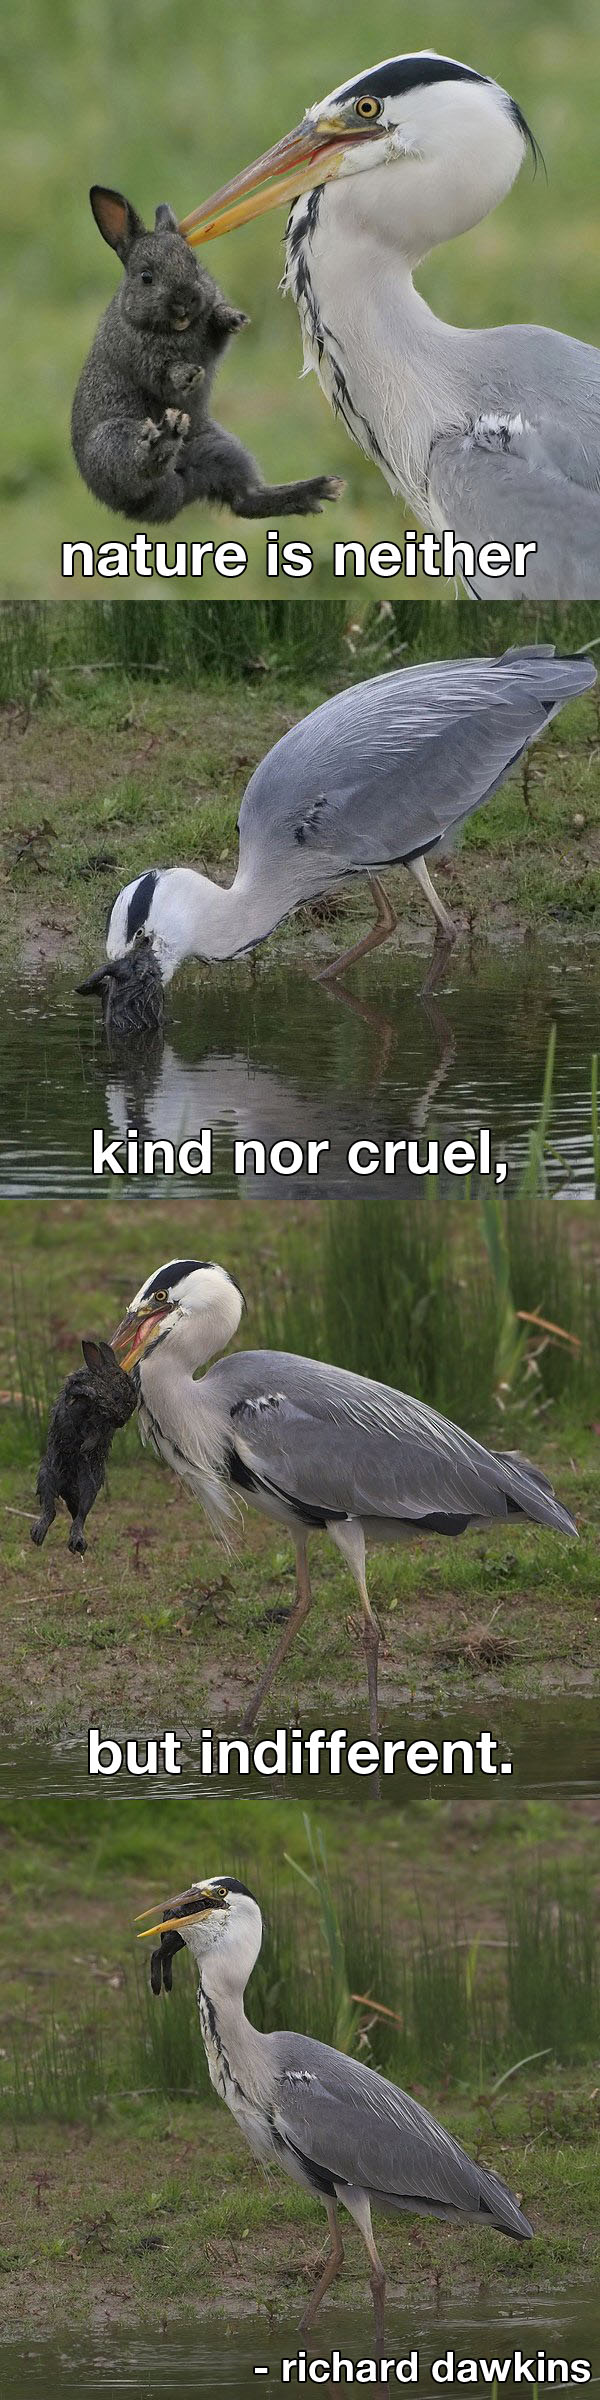 nature cruel - Click To View Image